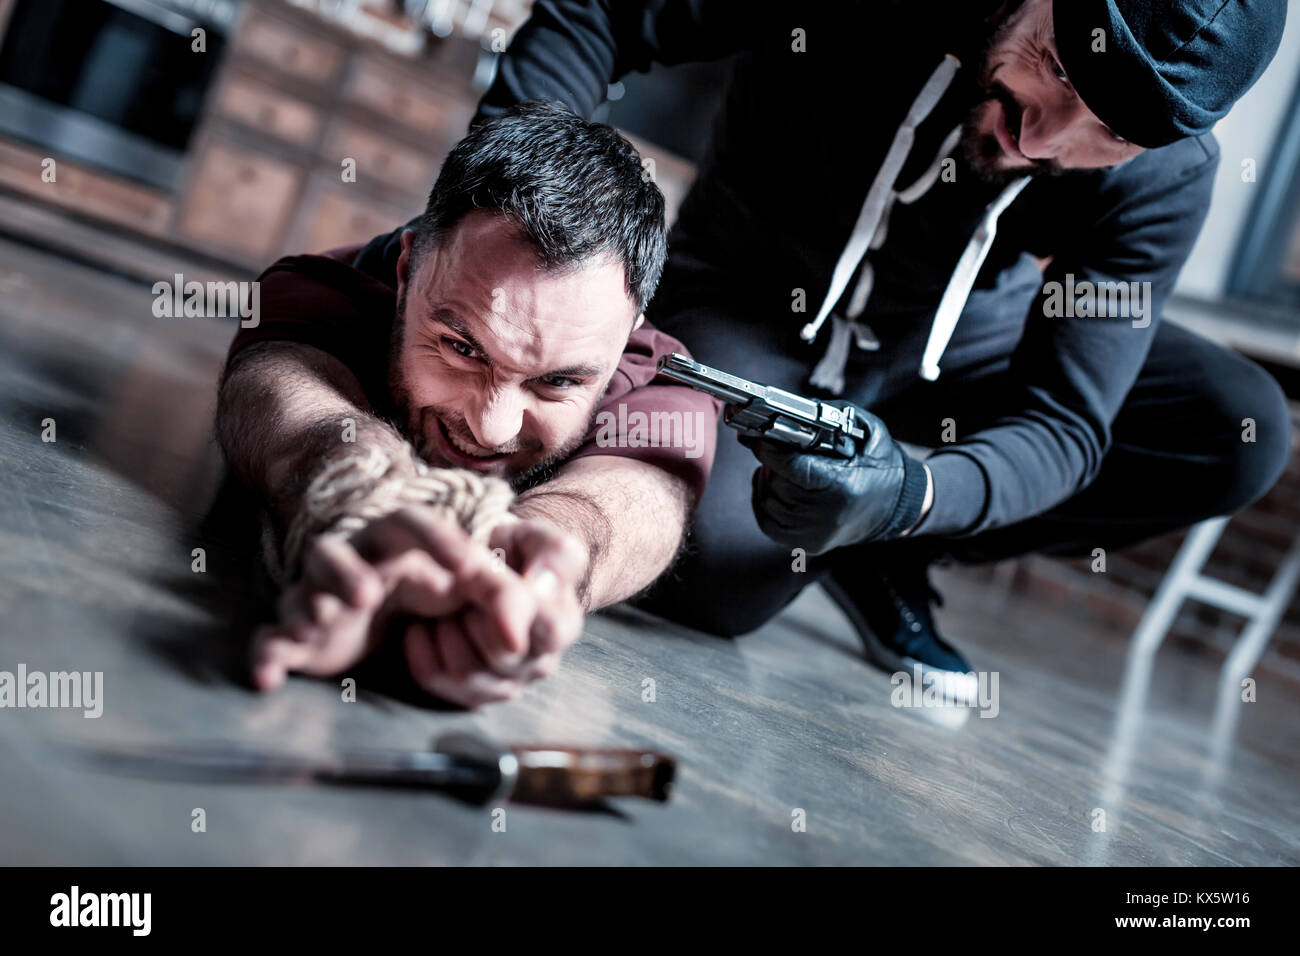 Frightened man trying to escape - Stock Image